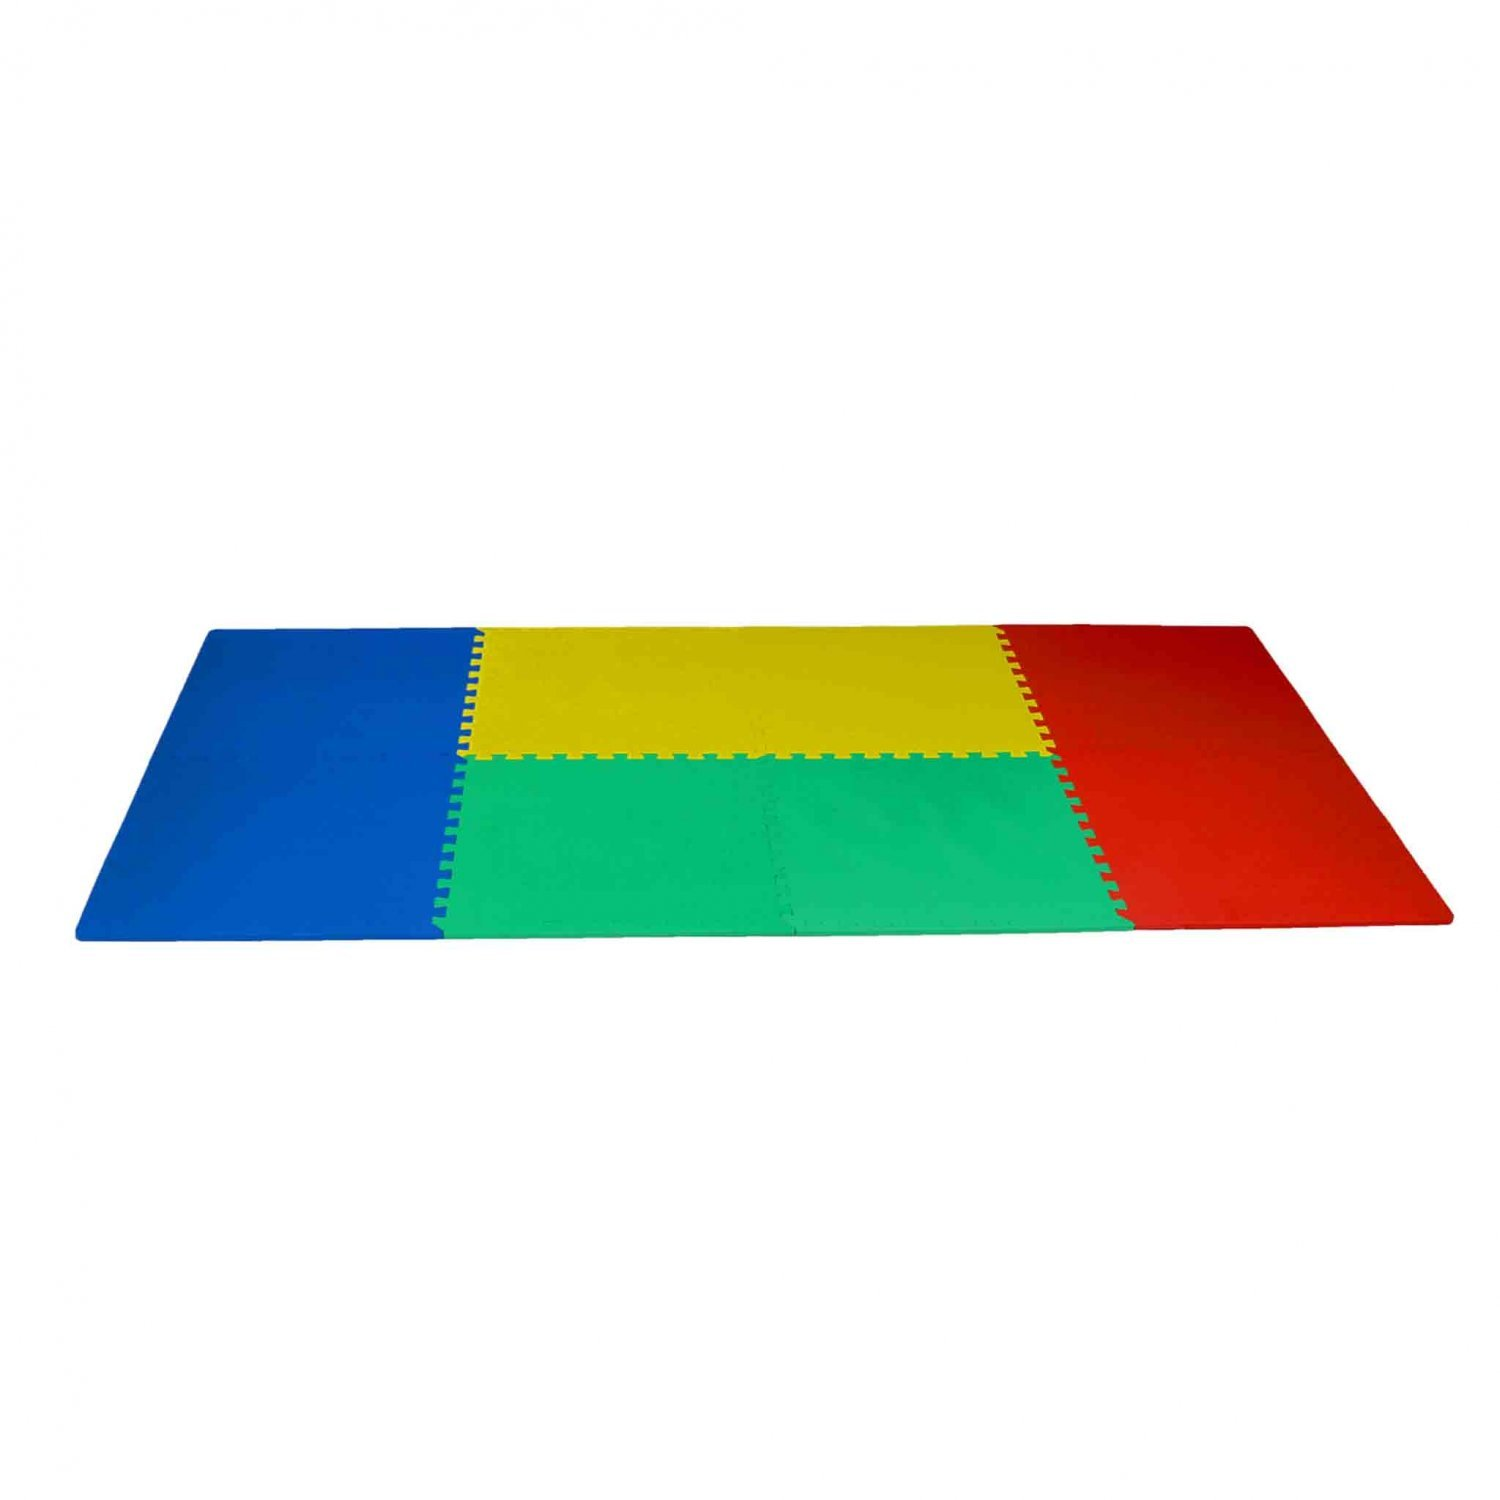 32 SQ FT Interlocking EVA Soft Foam Exercise Floor Play Mats